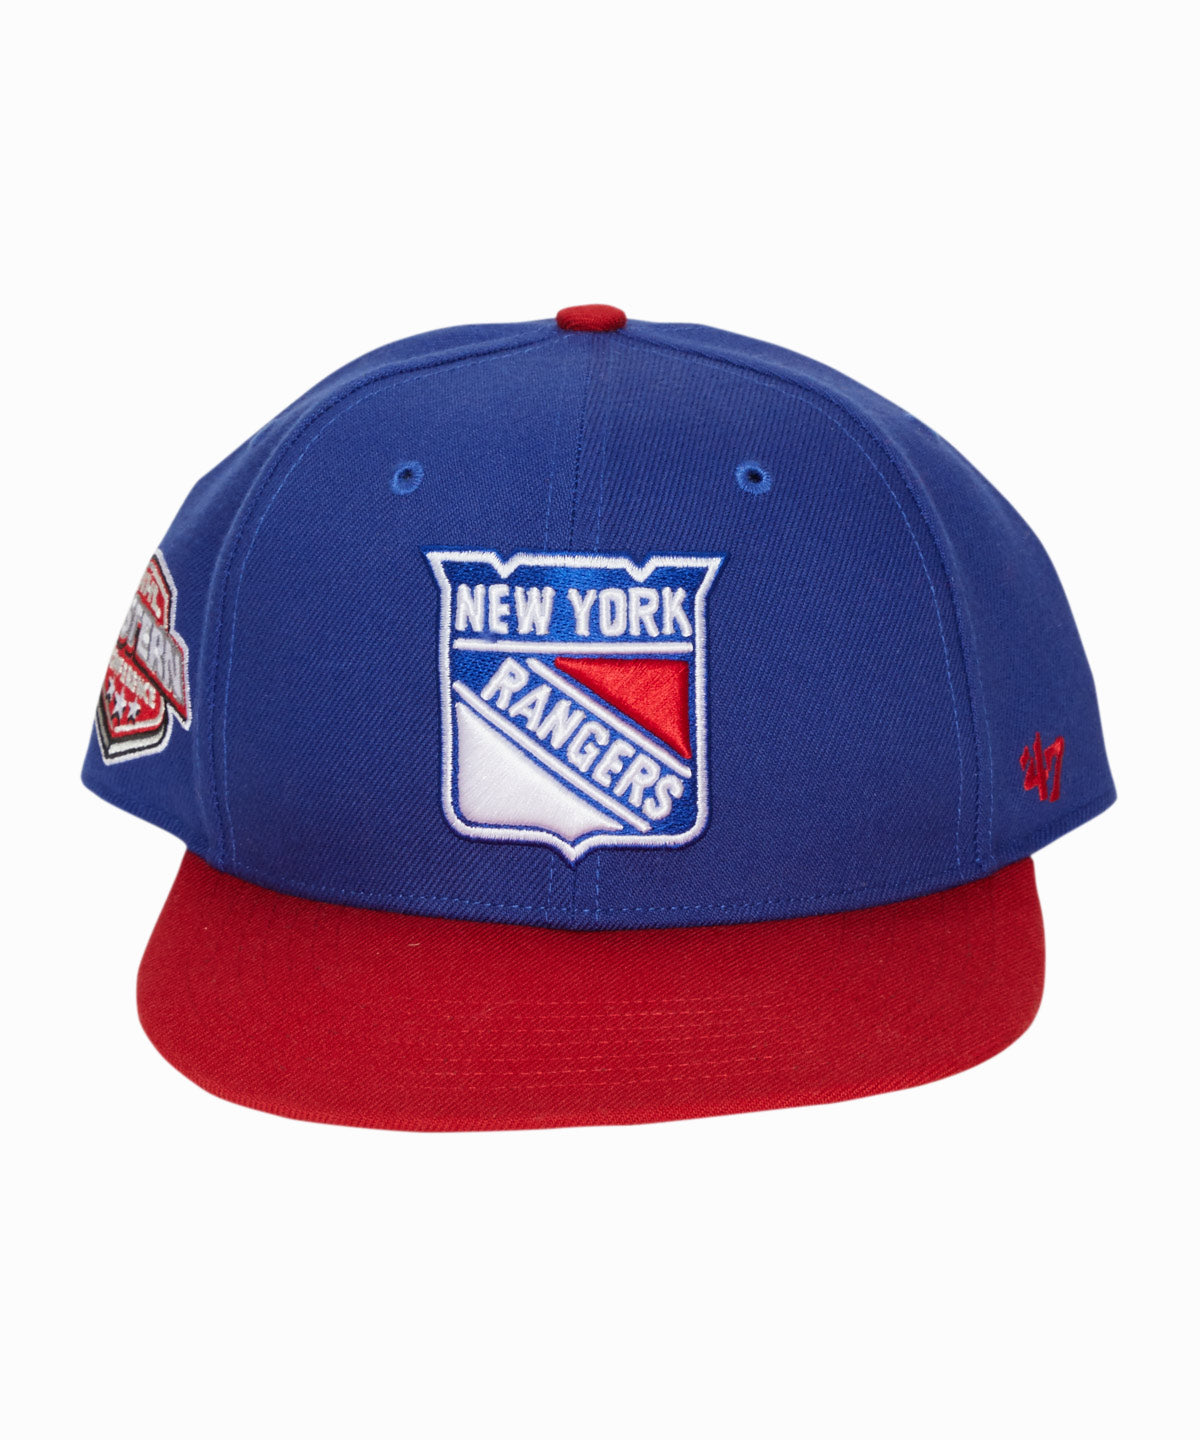 NY Rangers Sure Shot Snapback Hat